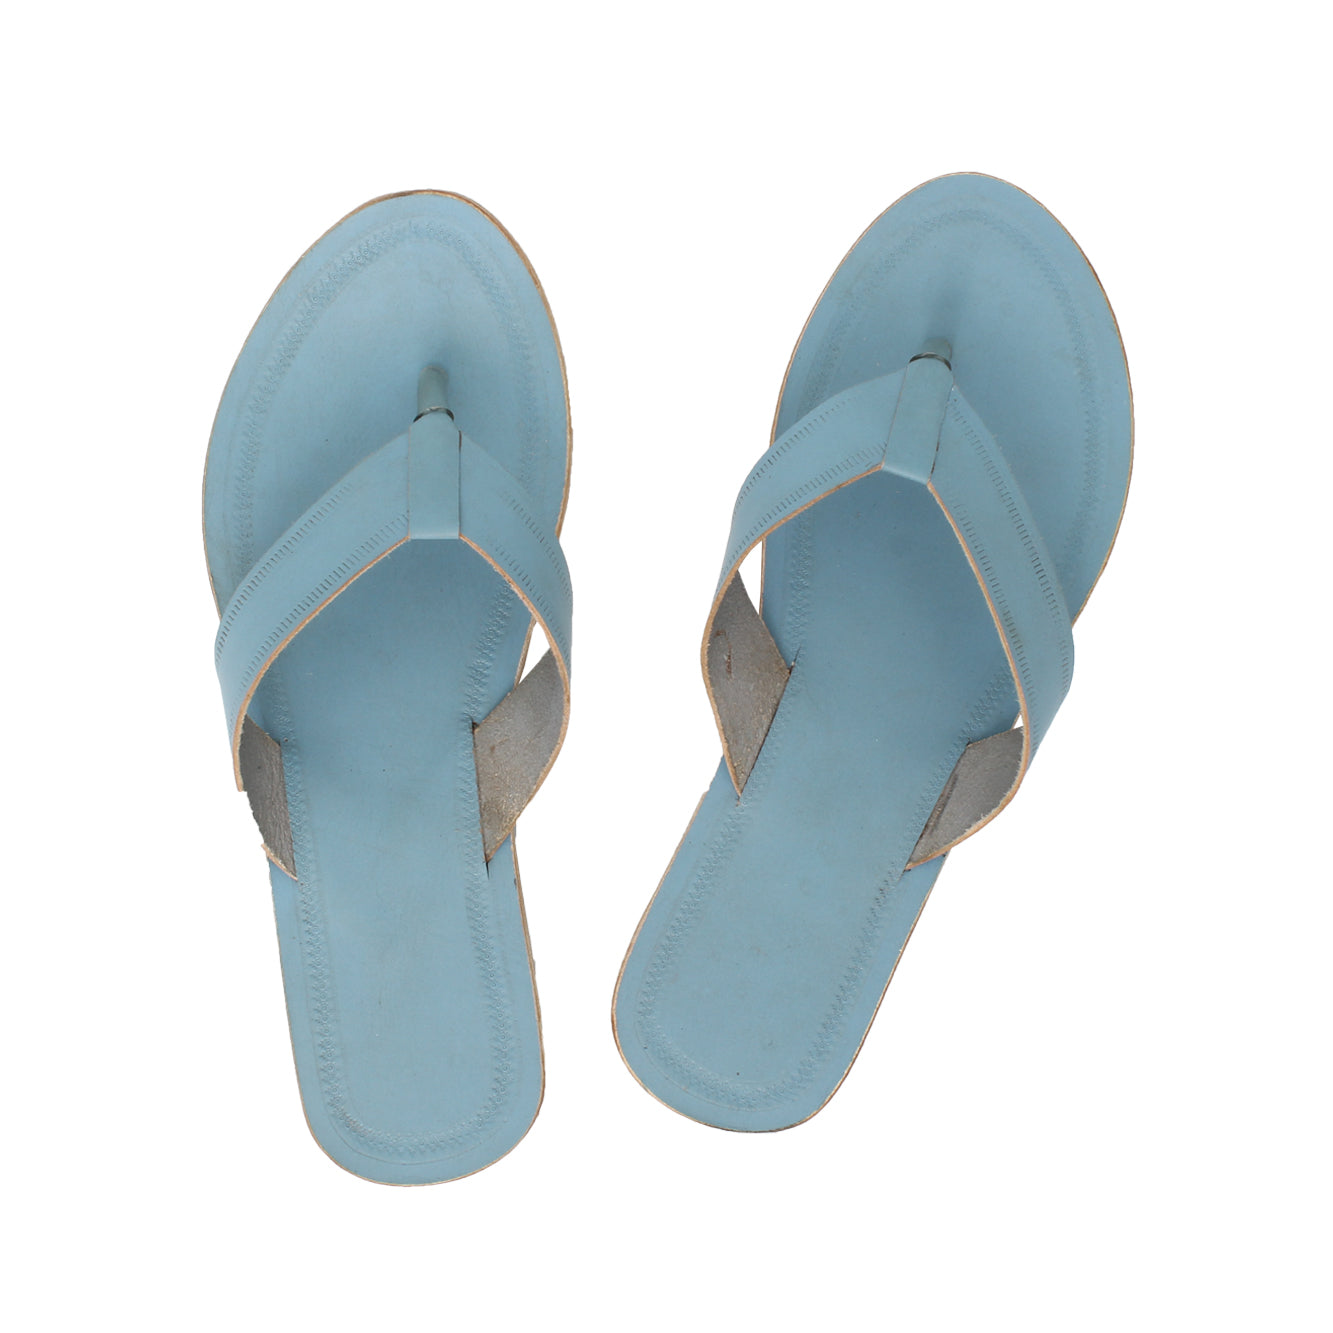 Attractive Sky Blue Kolhapuri Leather Slipper for Women KRKA-P-W-239